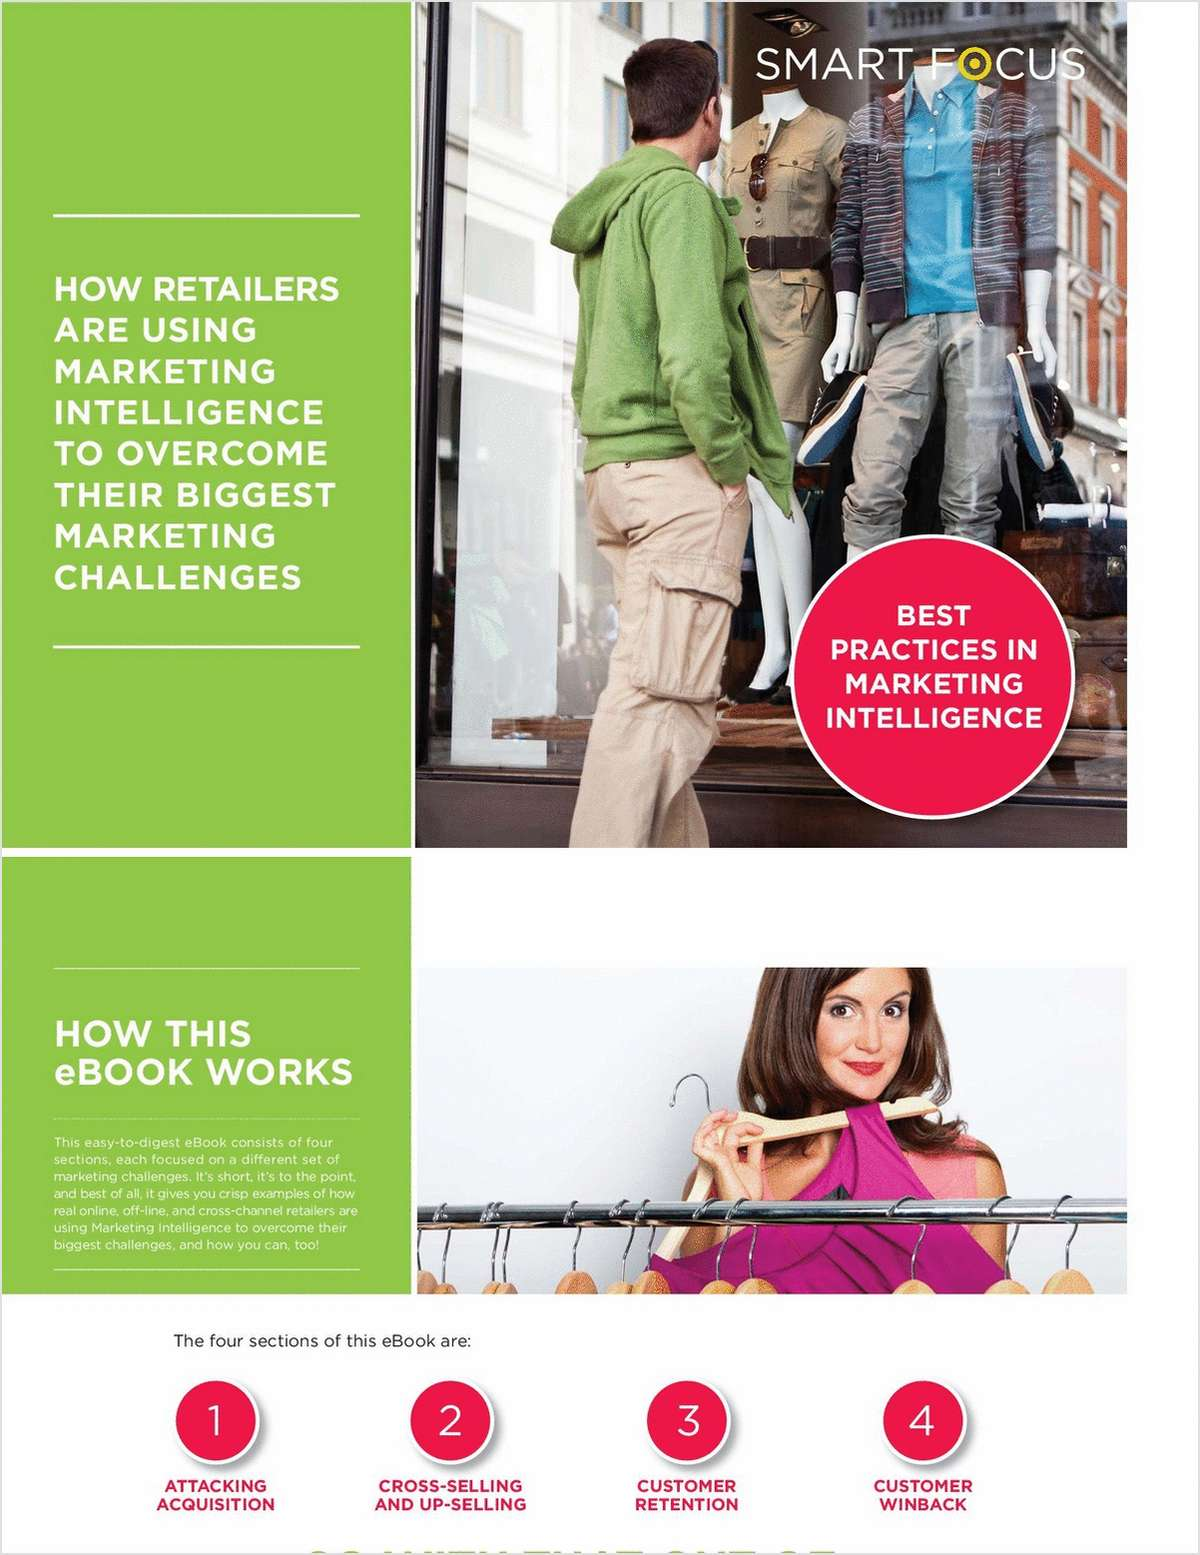 How Retailers are Using Marketing Intelligence